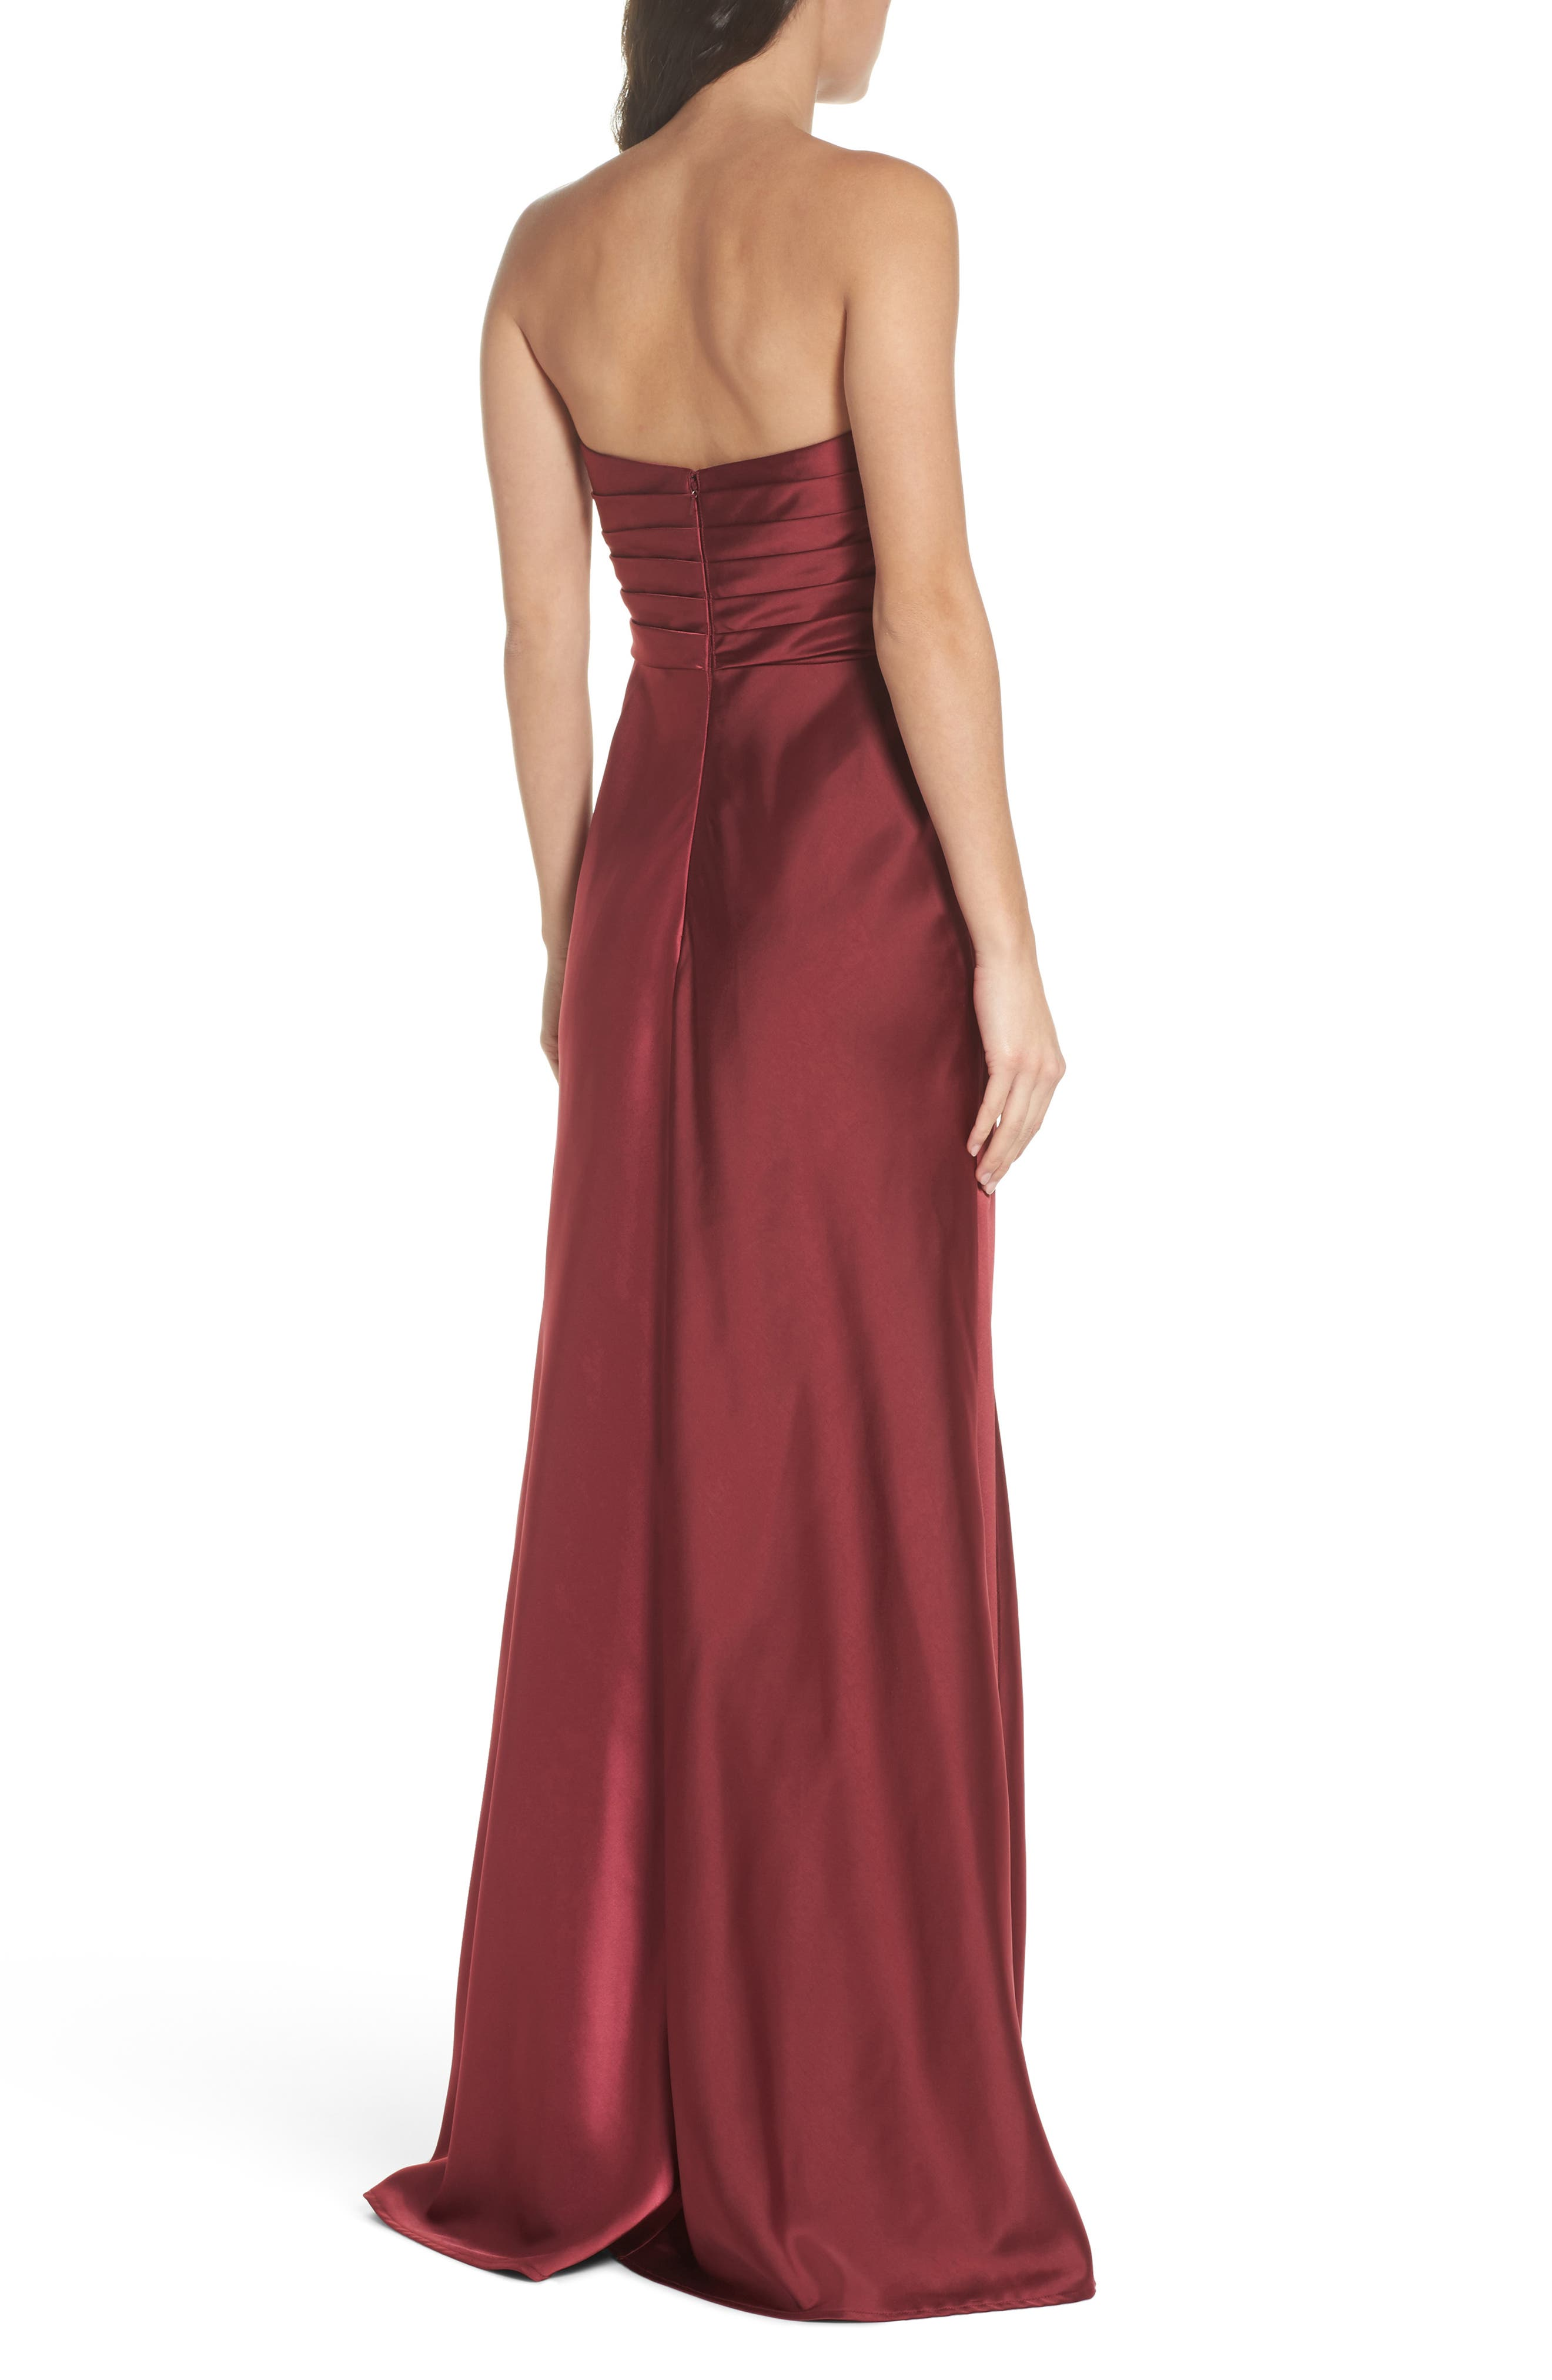 Gathered Strapless Satin Gown,                             Alternate thumbnail 2, color,                             602